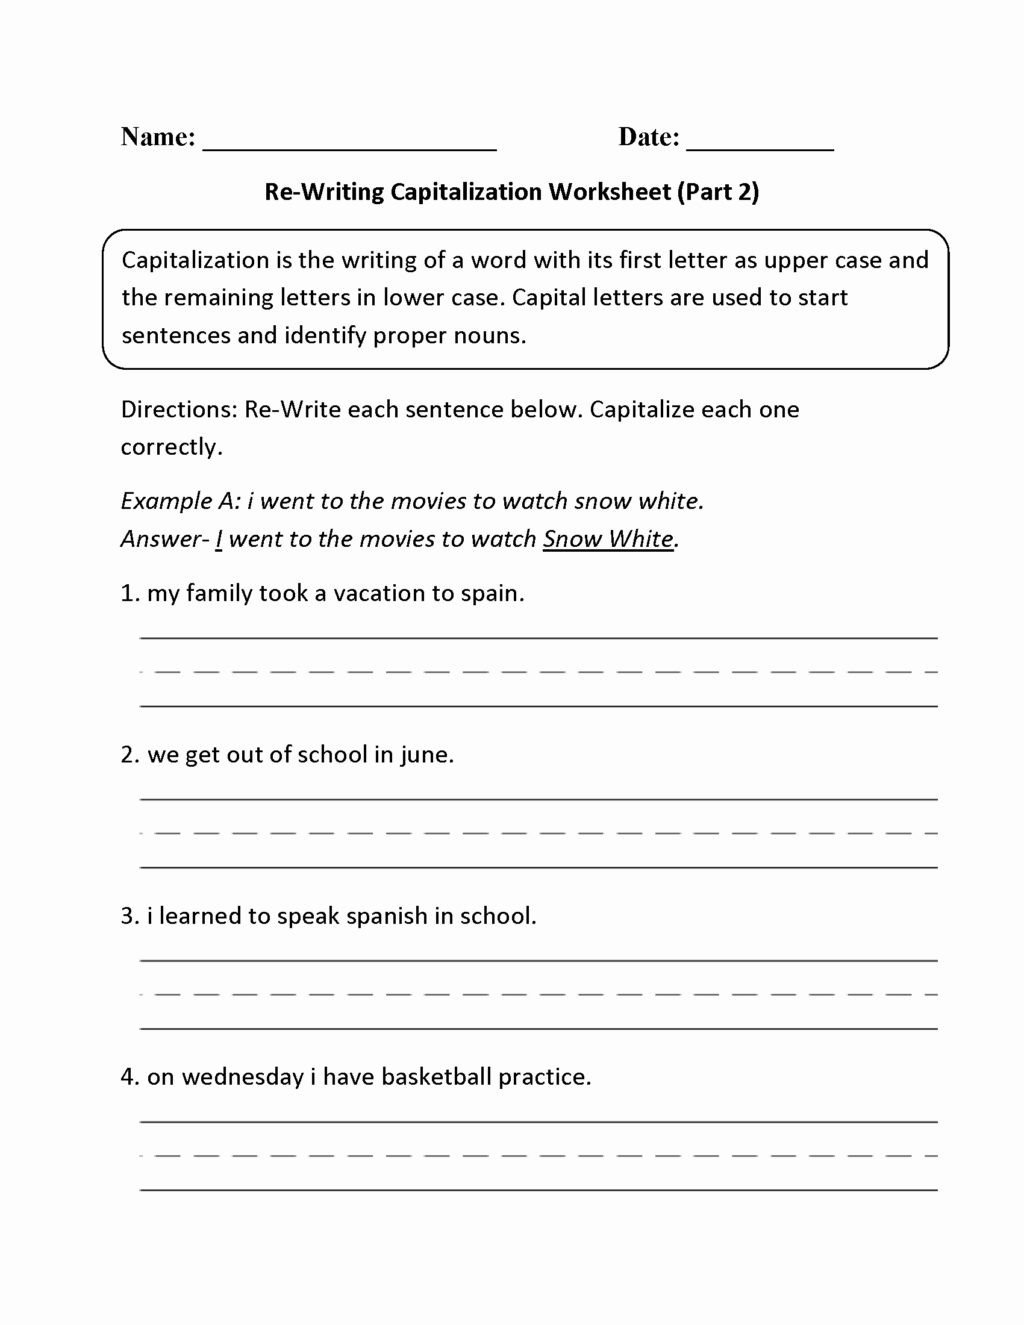 outstanding gradeng worksheets 4th for free printable and activities pdf 1024x1325